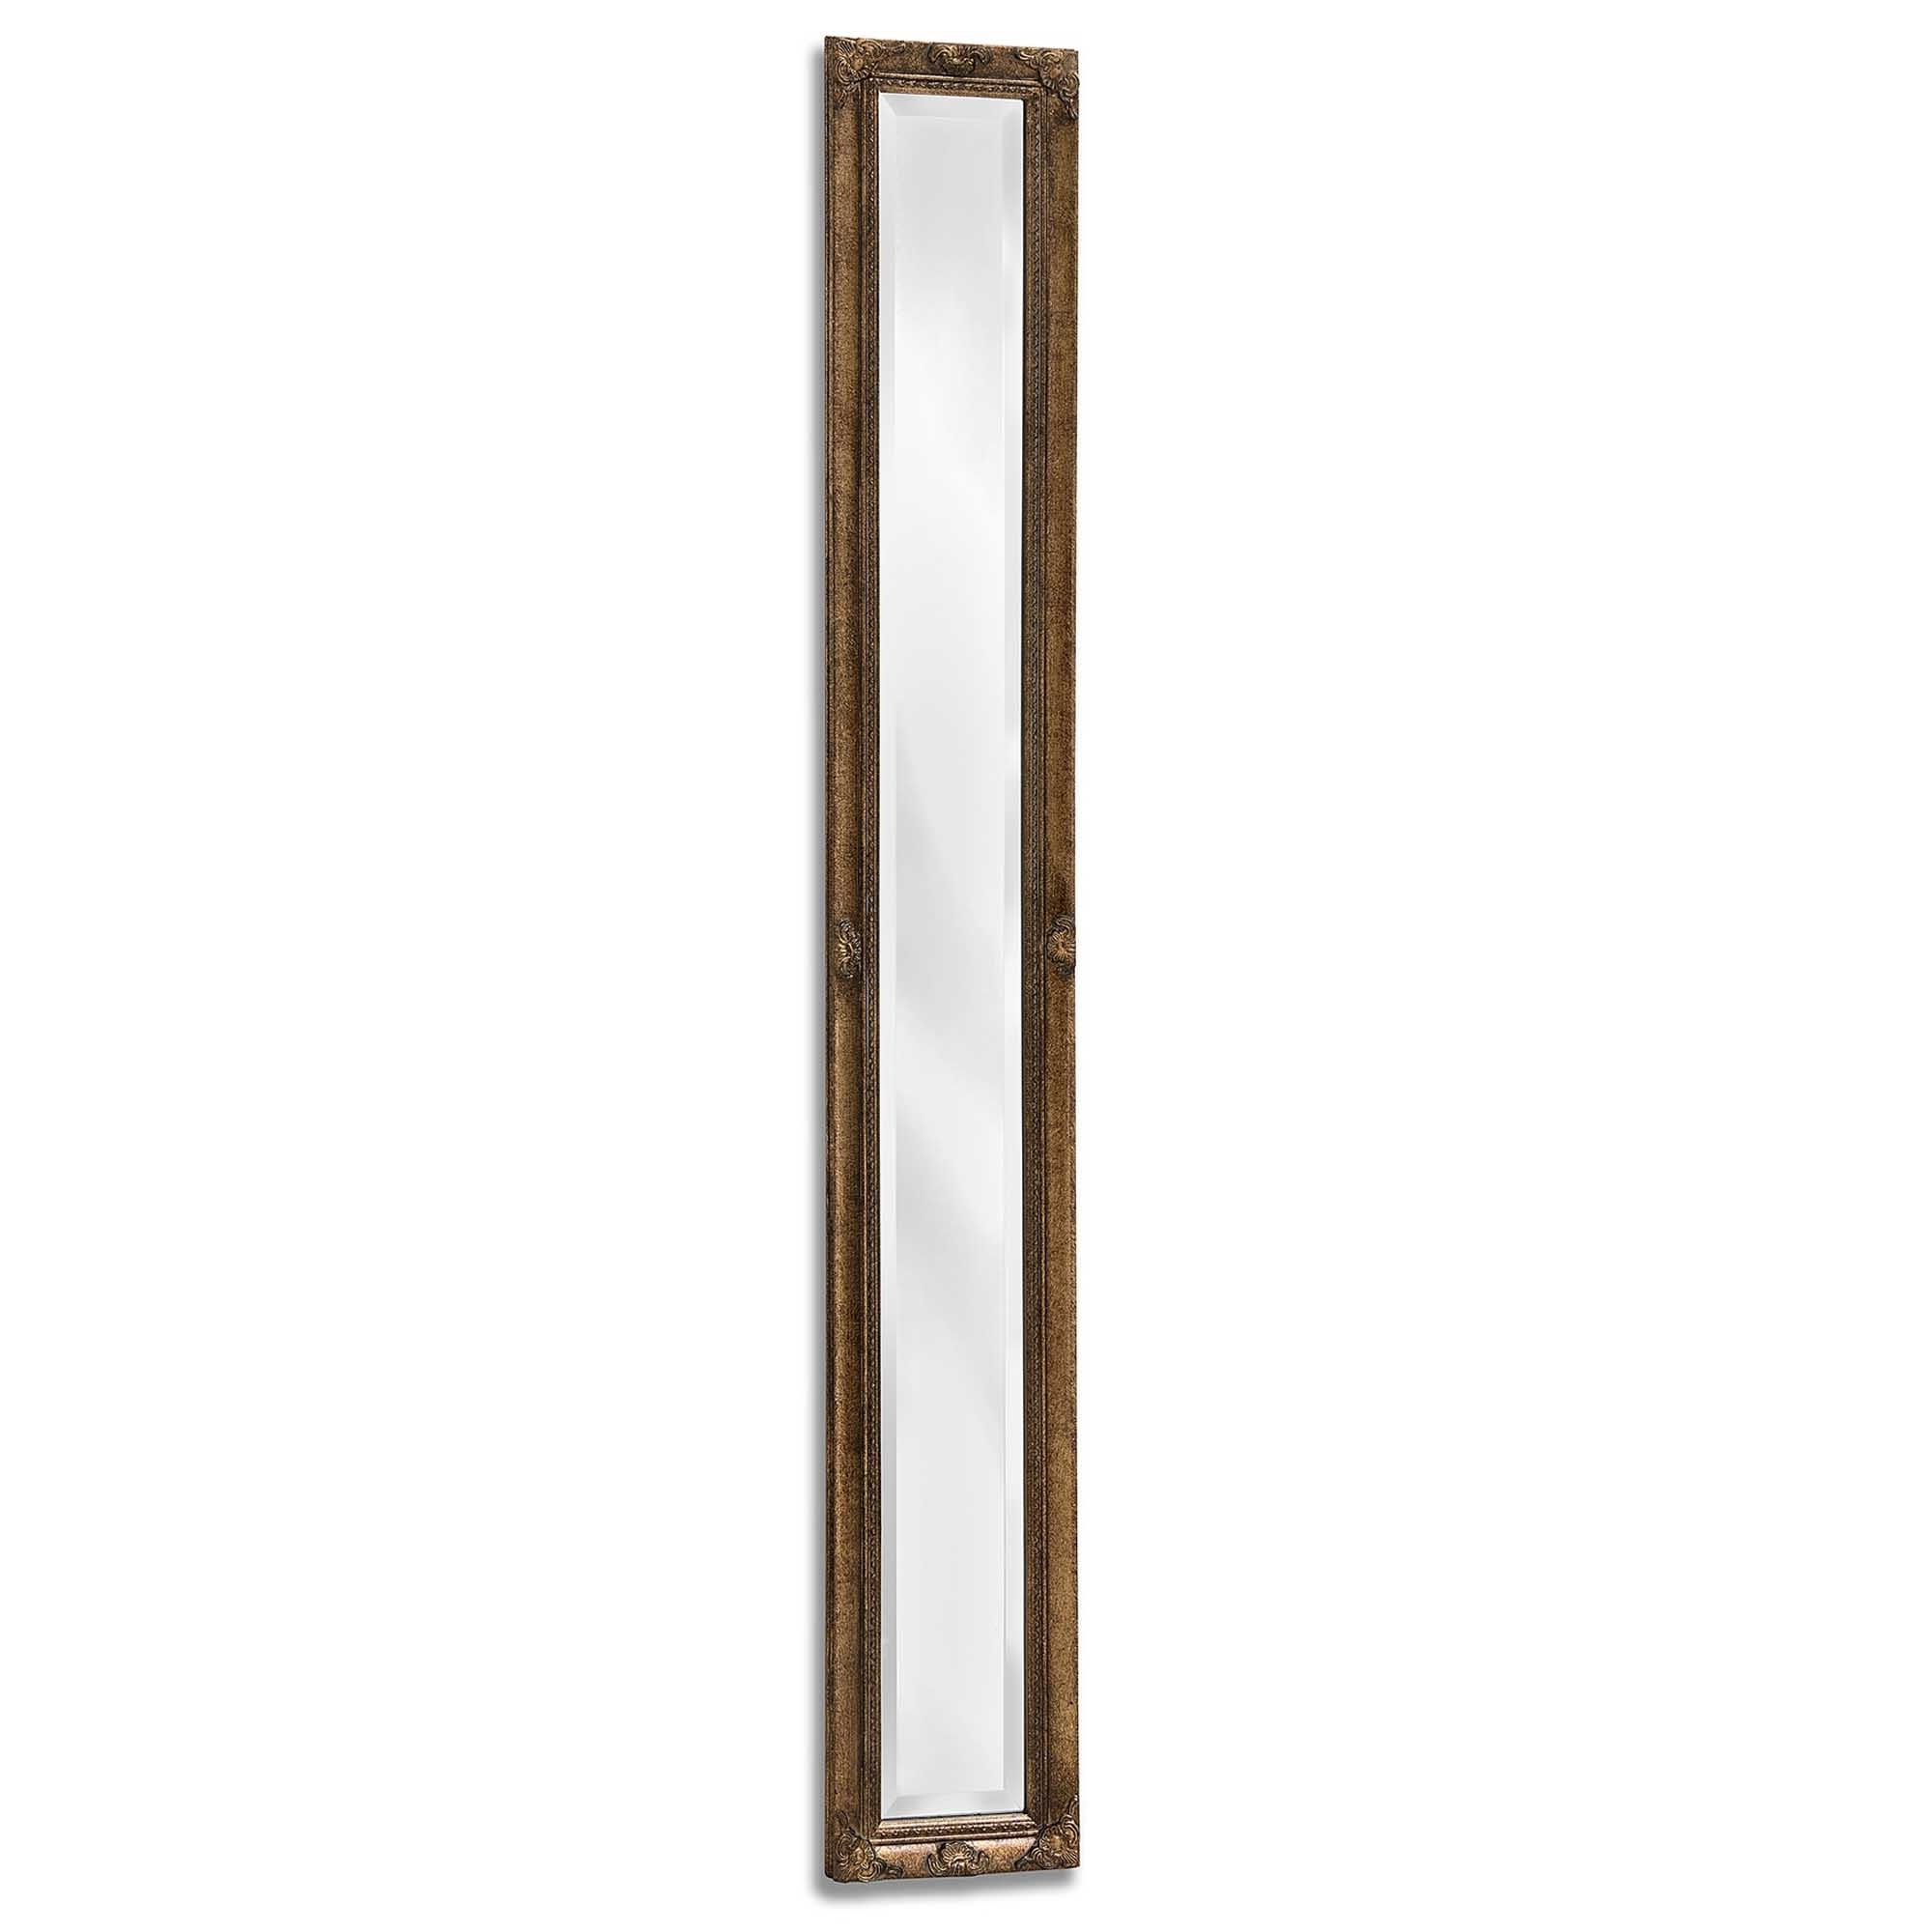 Tall Narrow Wall Mirrors Throughout Recent Antique French Style Gold Narrow Wall Mirror (View 16 of 20)